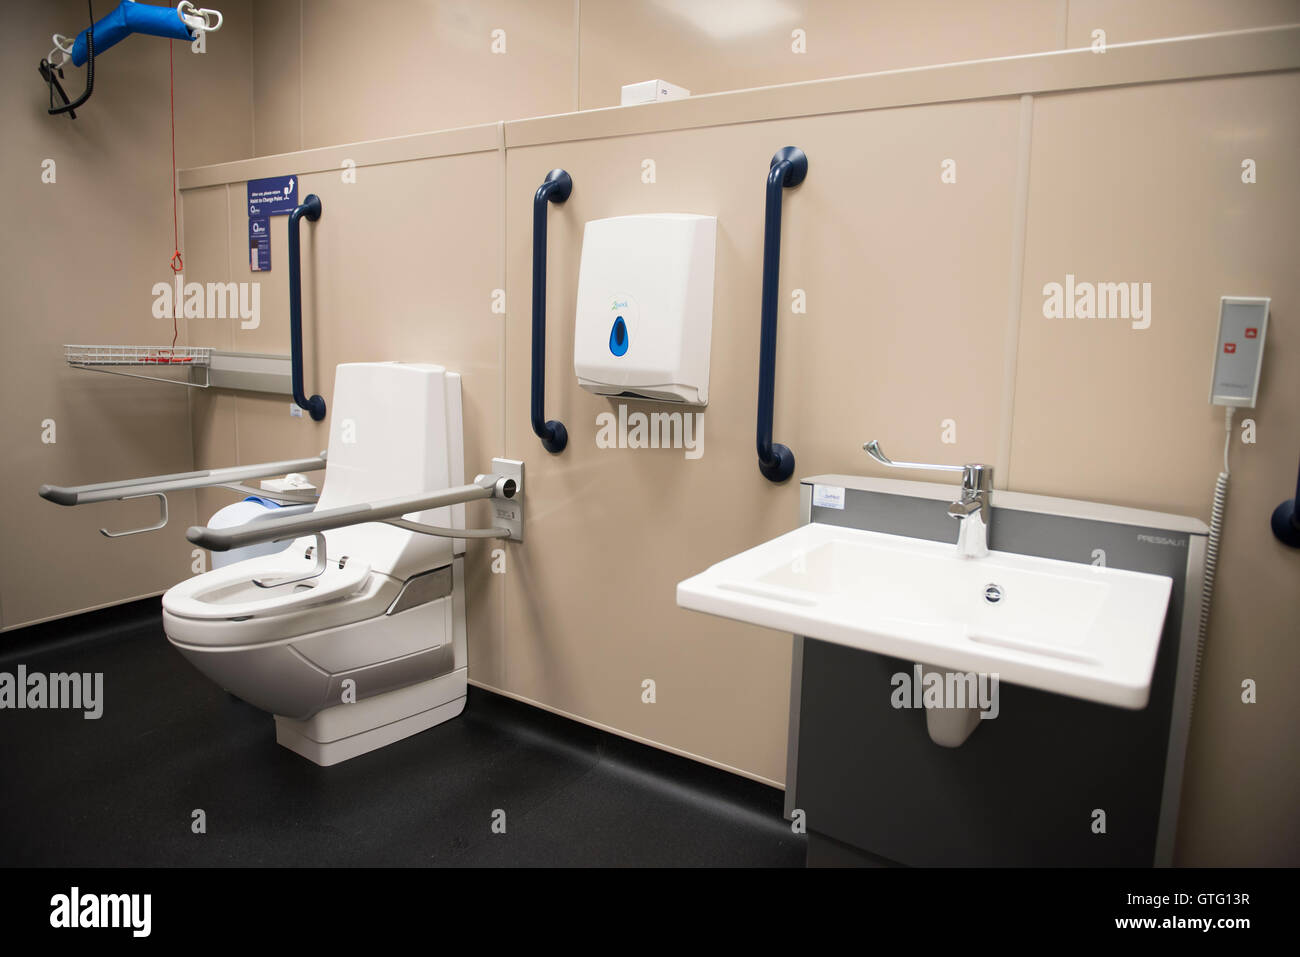 Disabled Toilet And Baby Changing Facilities In A Public